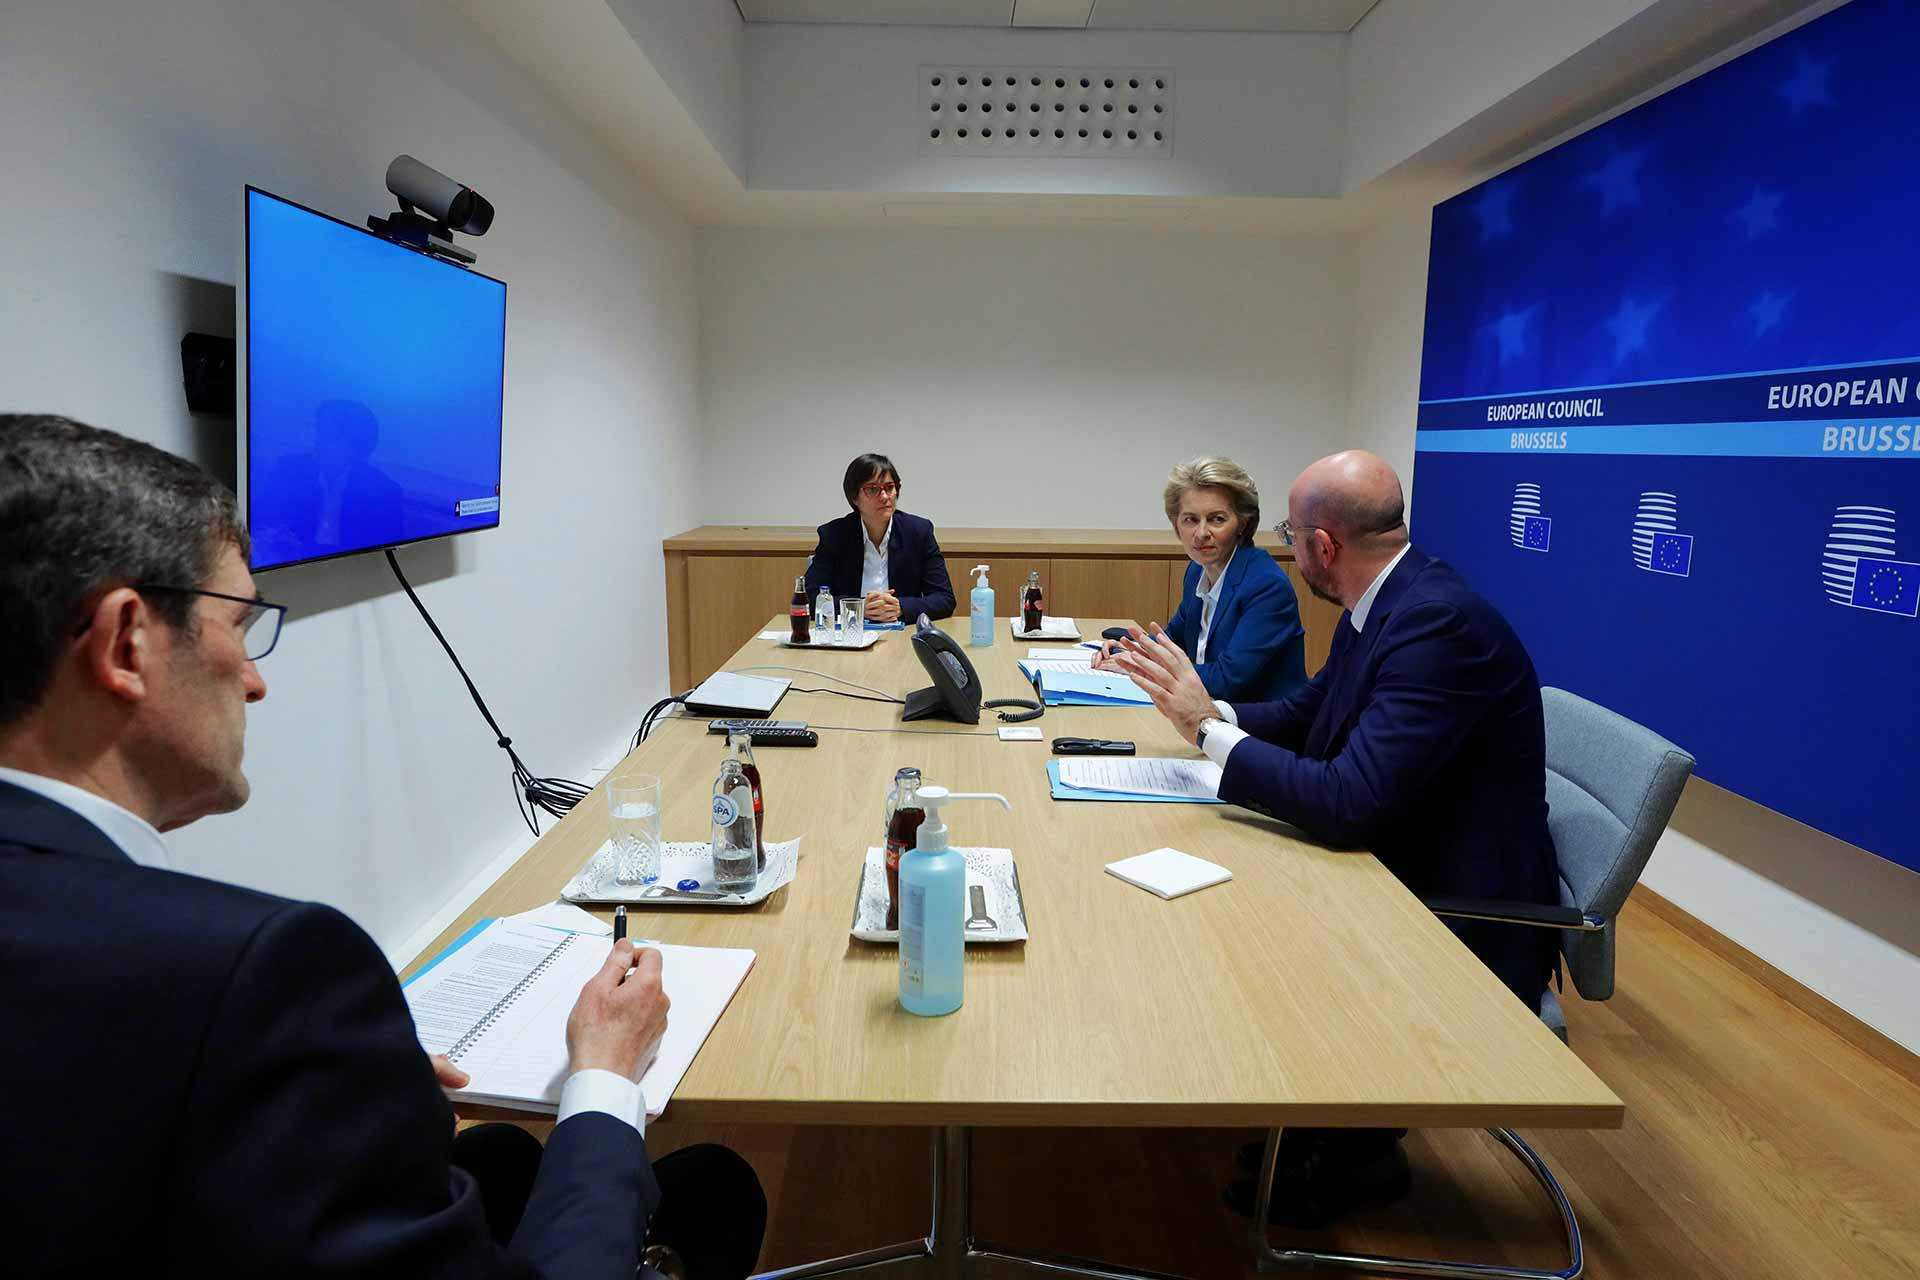 Extraordinary G7 Leaders' video conference on COVID-19